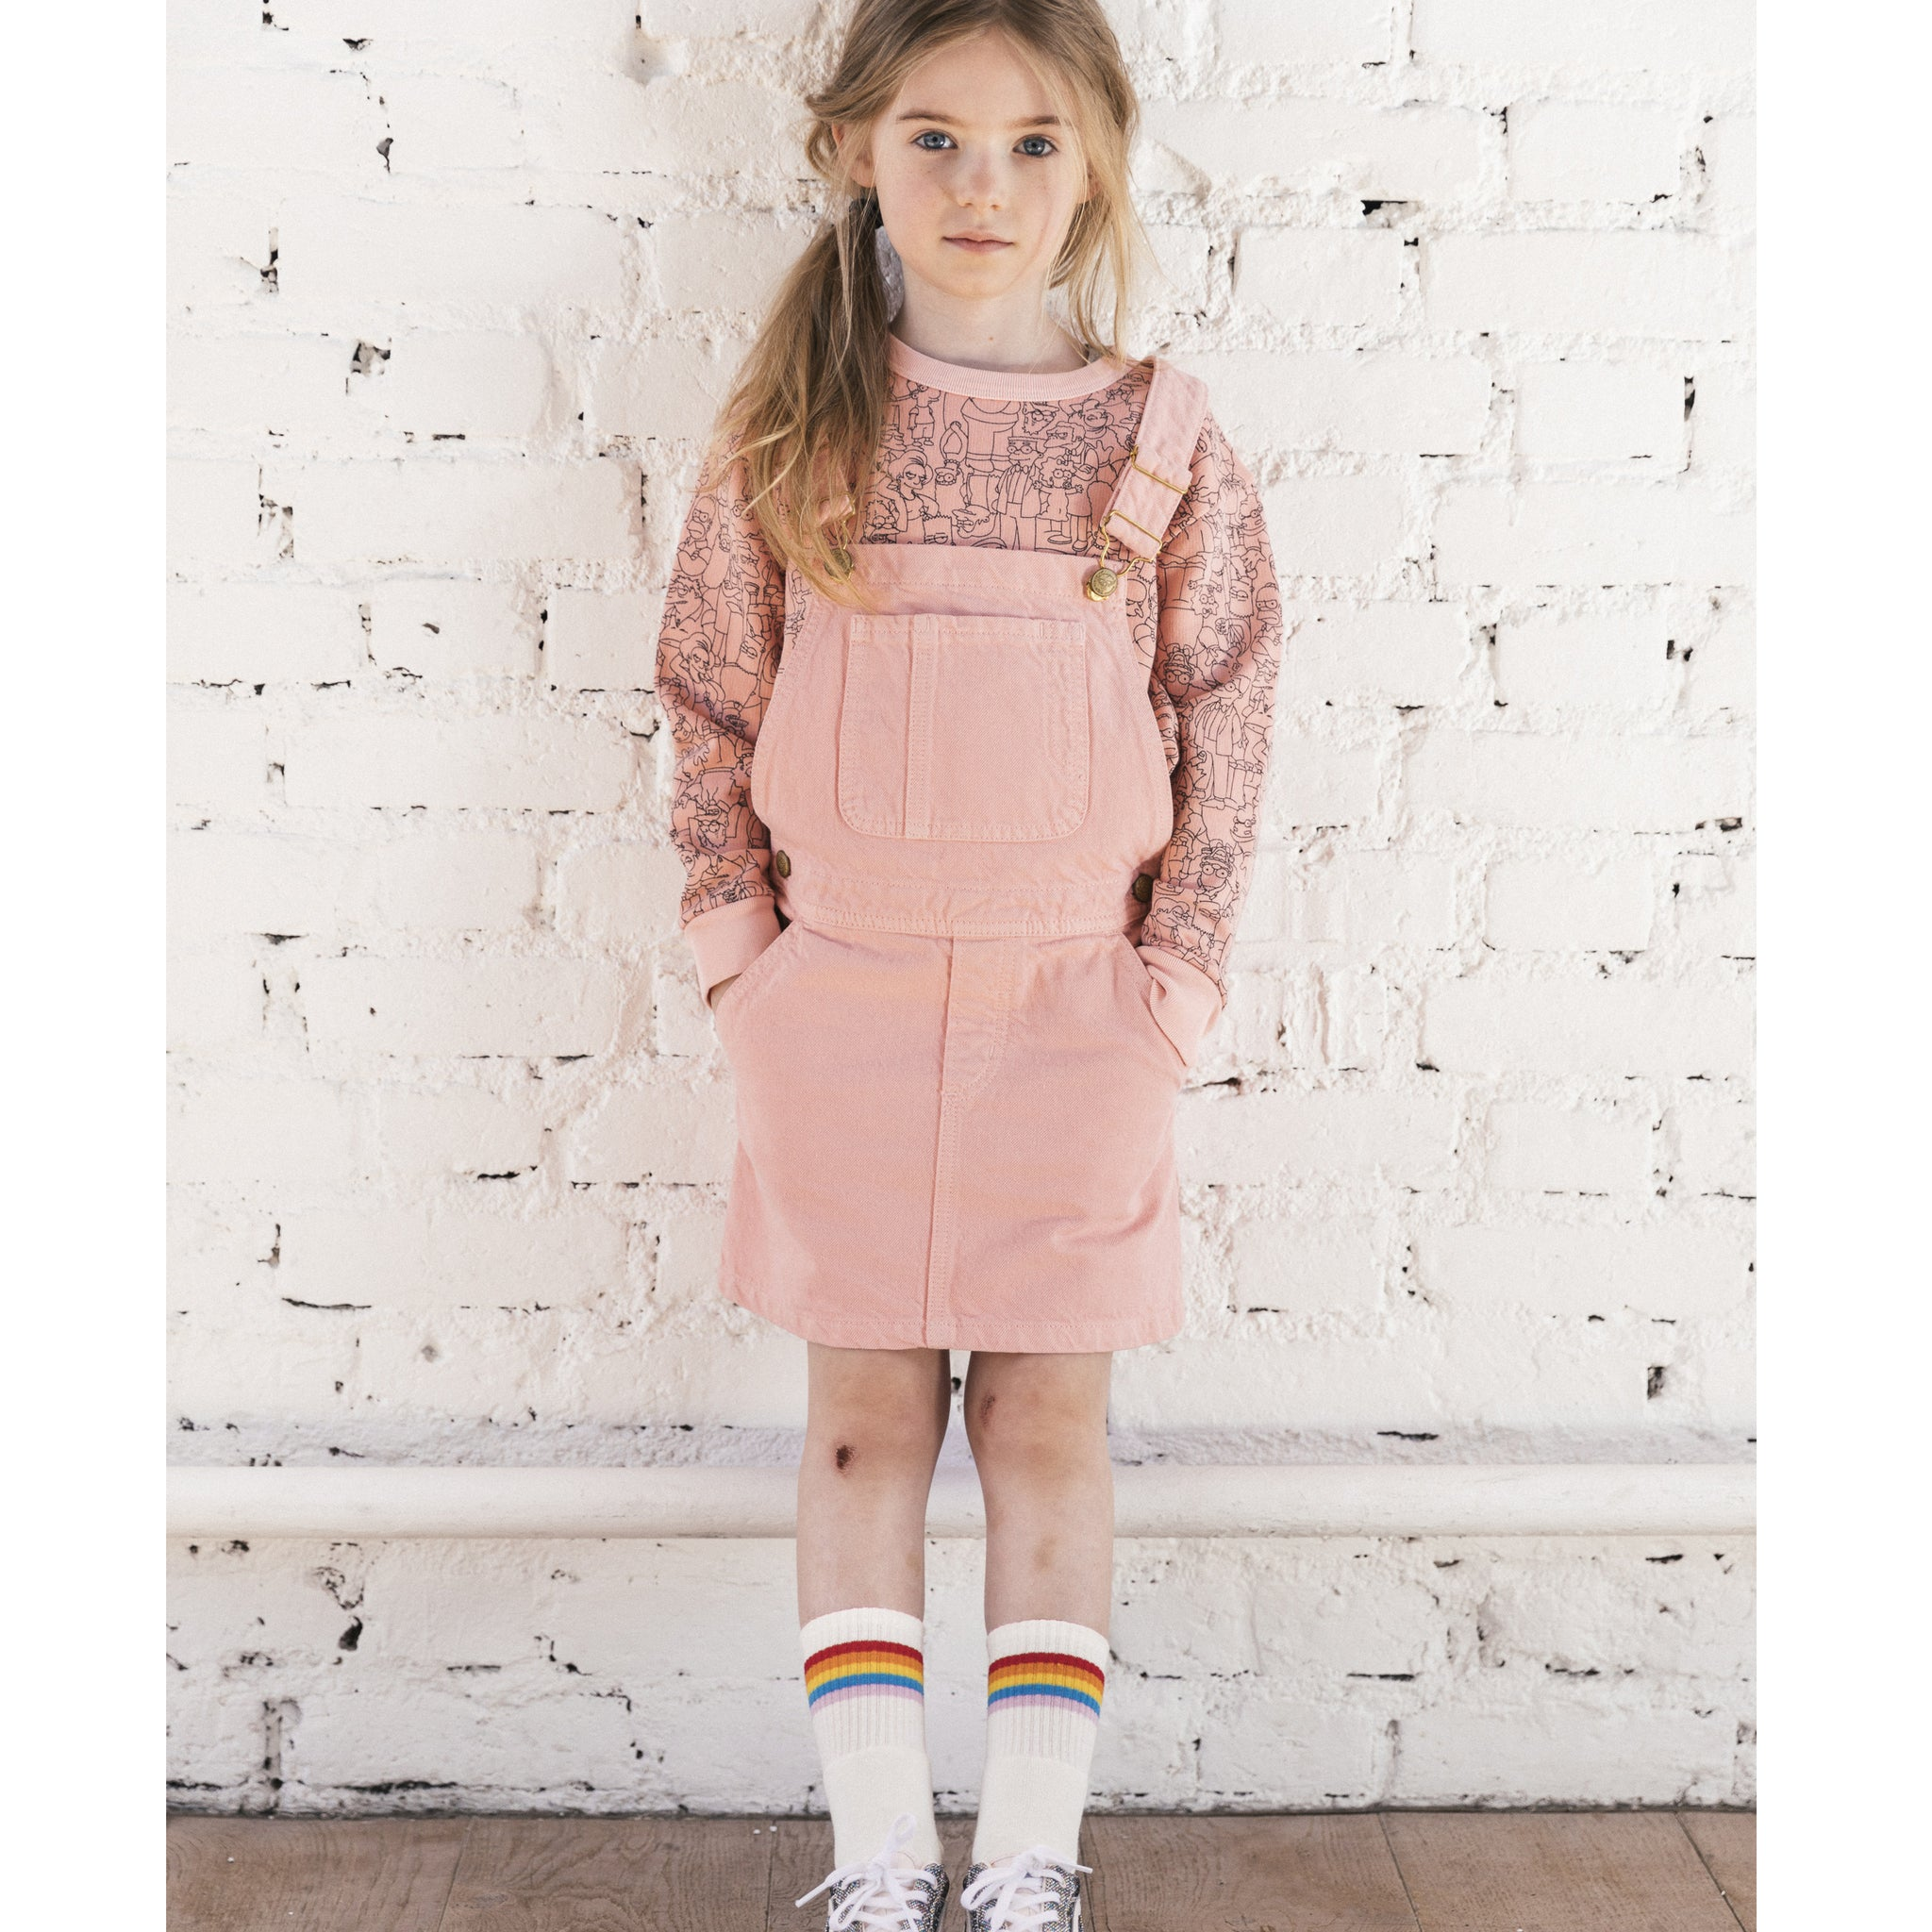 CHERRY Milky Pink - Girl Woven Overall Dress 2 js-nozoom